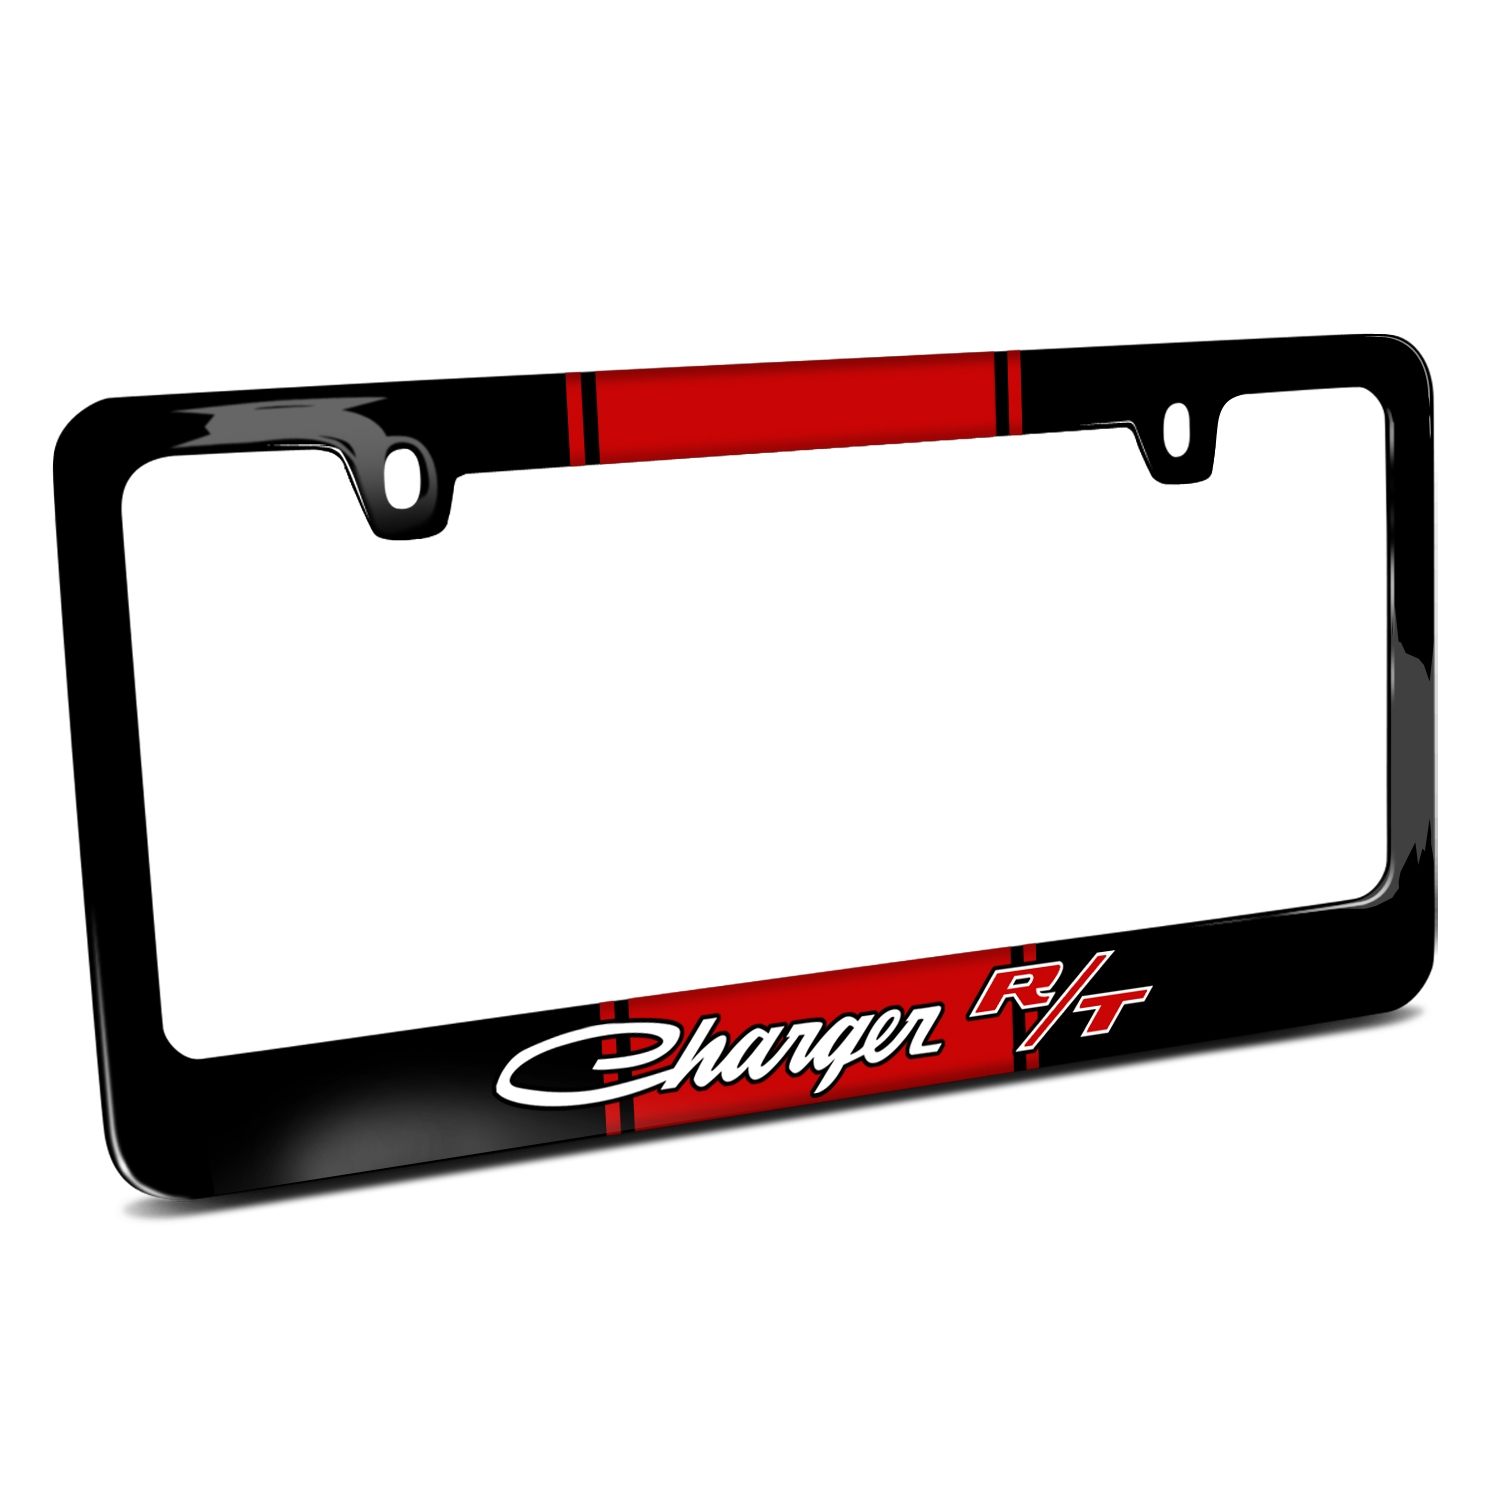 Dodge Charger R/T Classic Racing Stripe Black Metal License Plate Frame